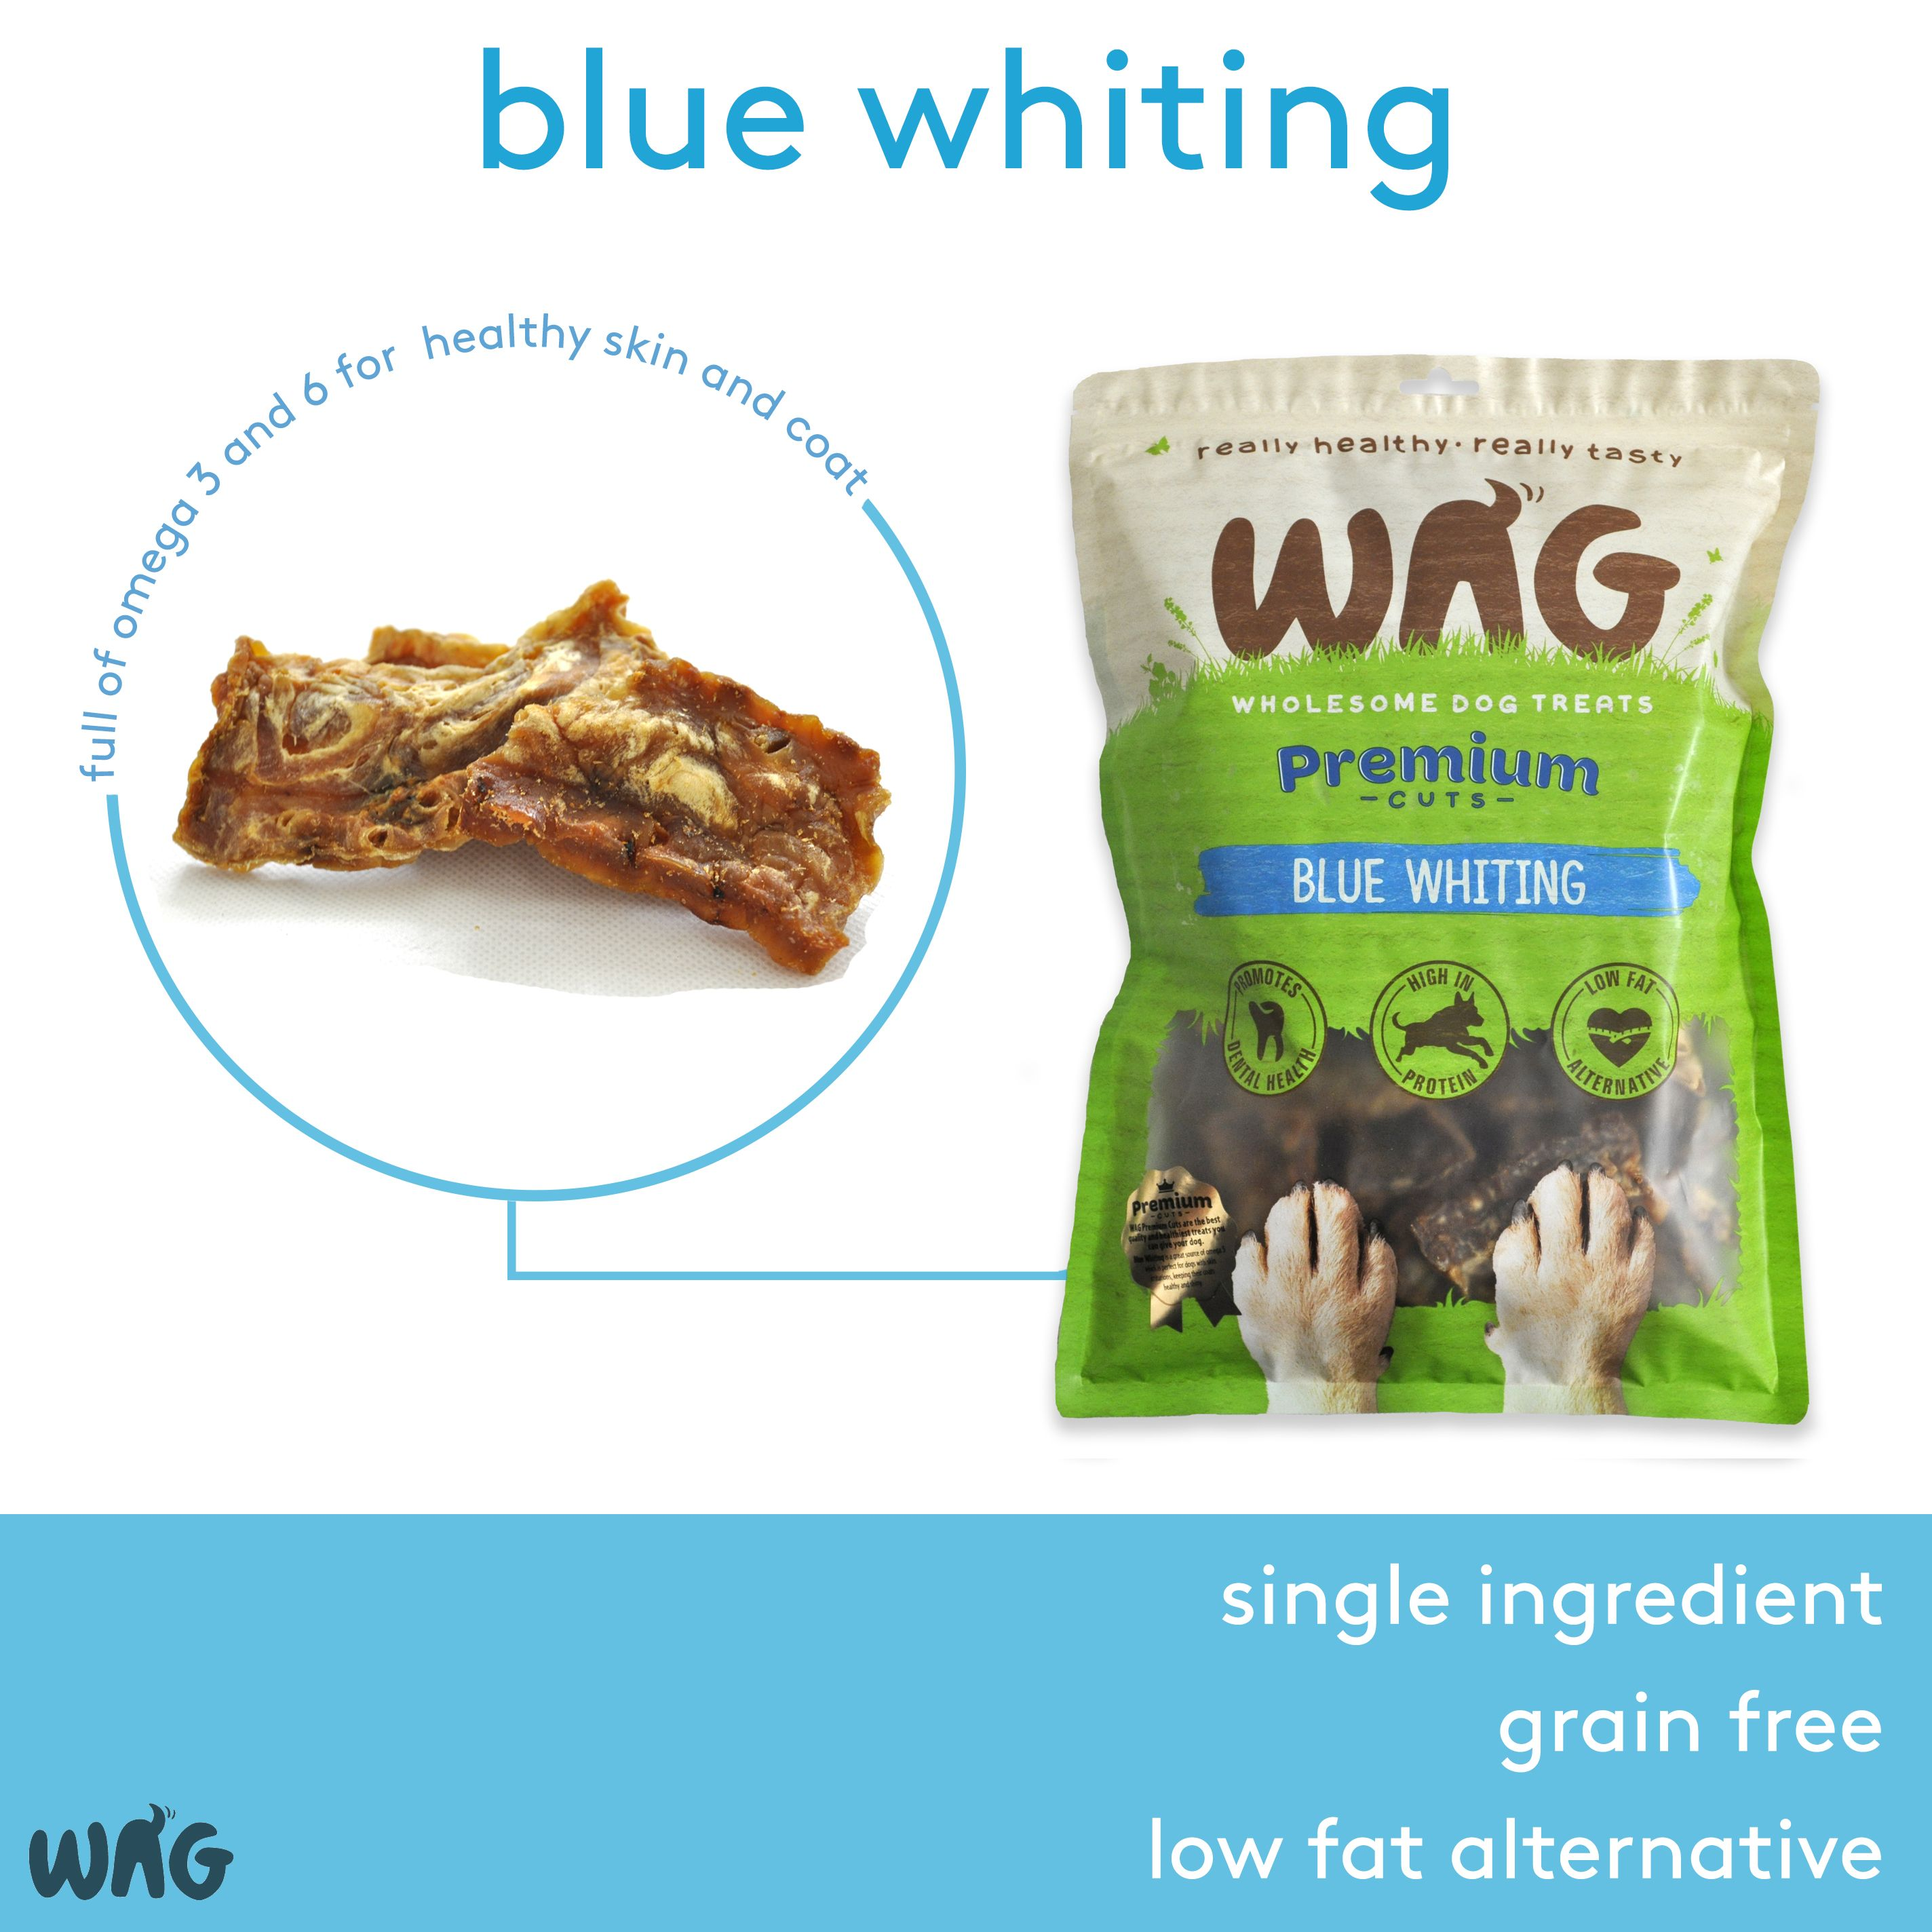 Wag Blue Whiting Grain Free Hypoallergenic Natural Australian Made Dog Treat Chew Healthy Fish Sea Natural Dog Treats Healthy Natural Dog Treats Healthy Fish